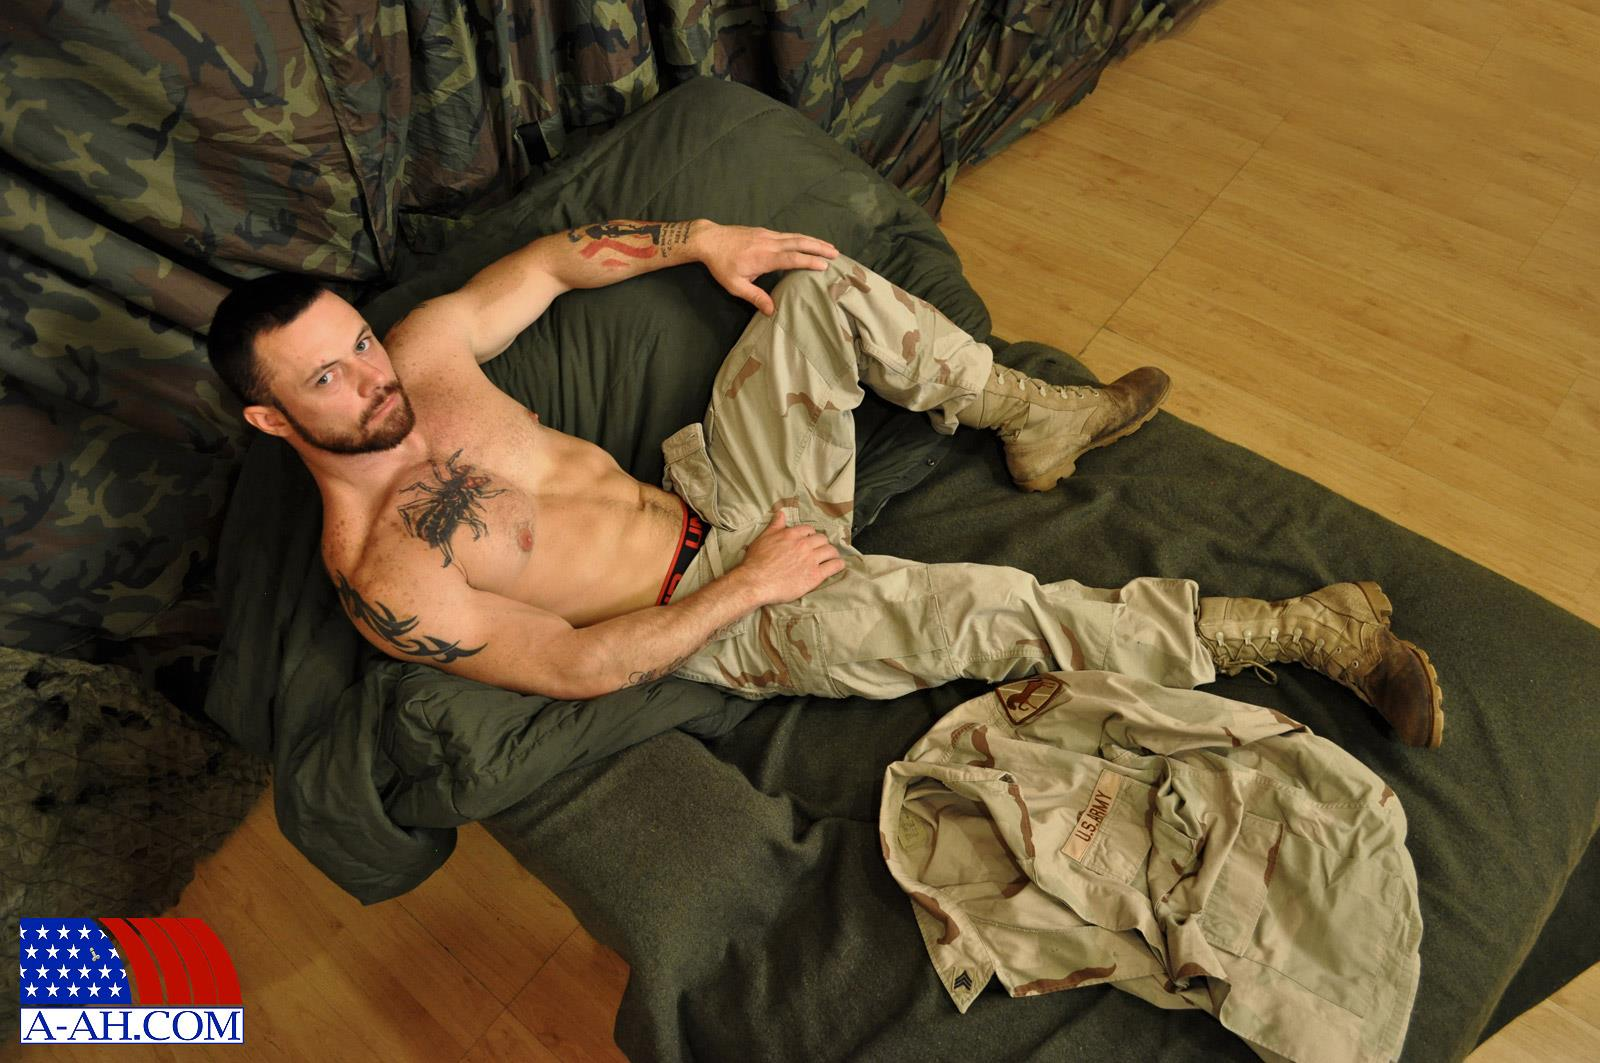 All-American-Heroes-Sergeant-Miles-Army-Guy-Jerking-Off-Big-Cock-And-Fingering-Ass-Amateur-Gay-Porn-02.jpg